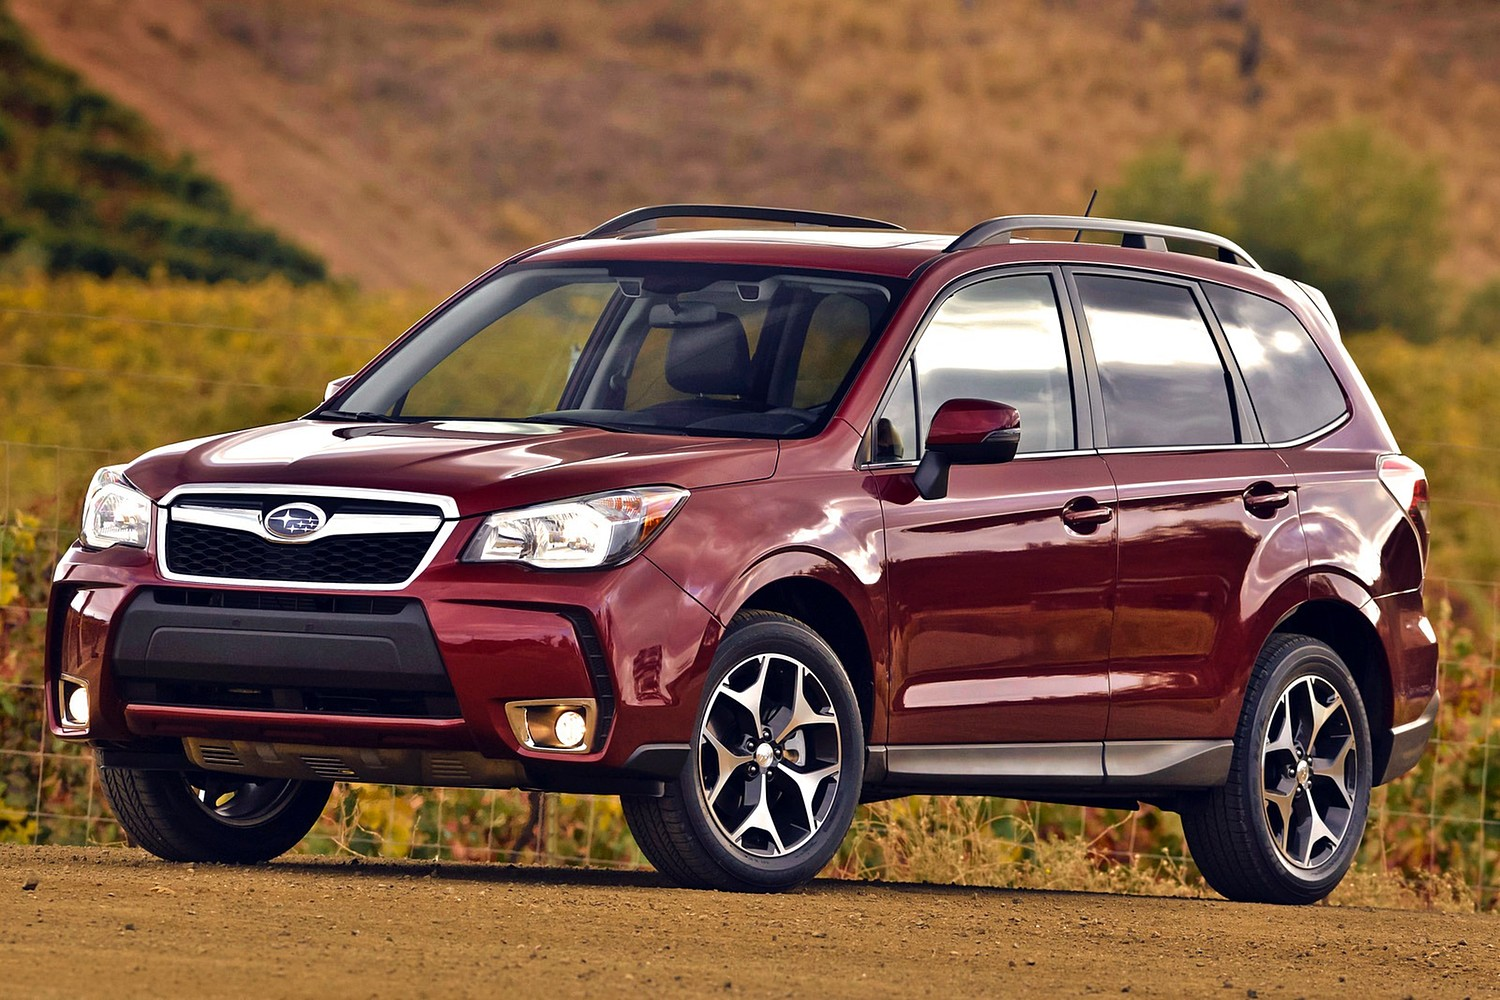 2015 Subaru Forester 2.0XT Touring 4dr SUV Exterior Shown